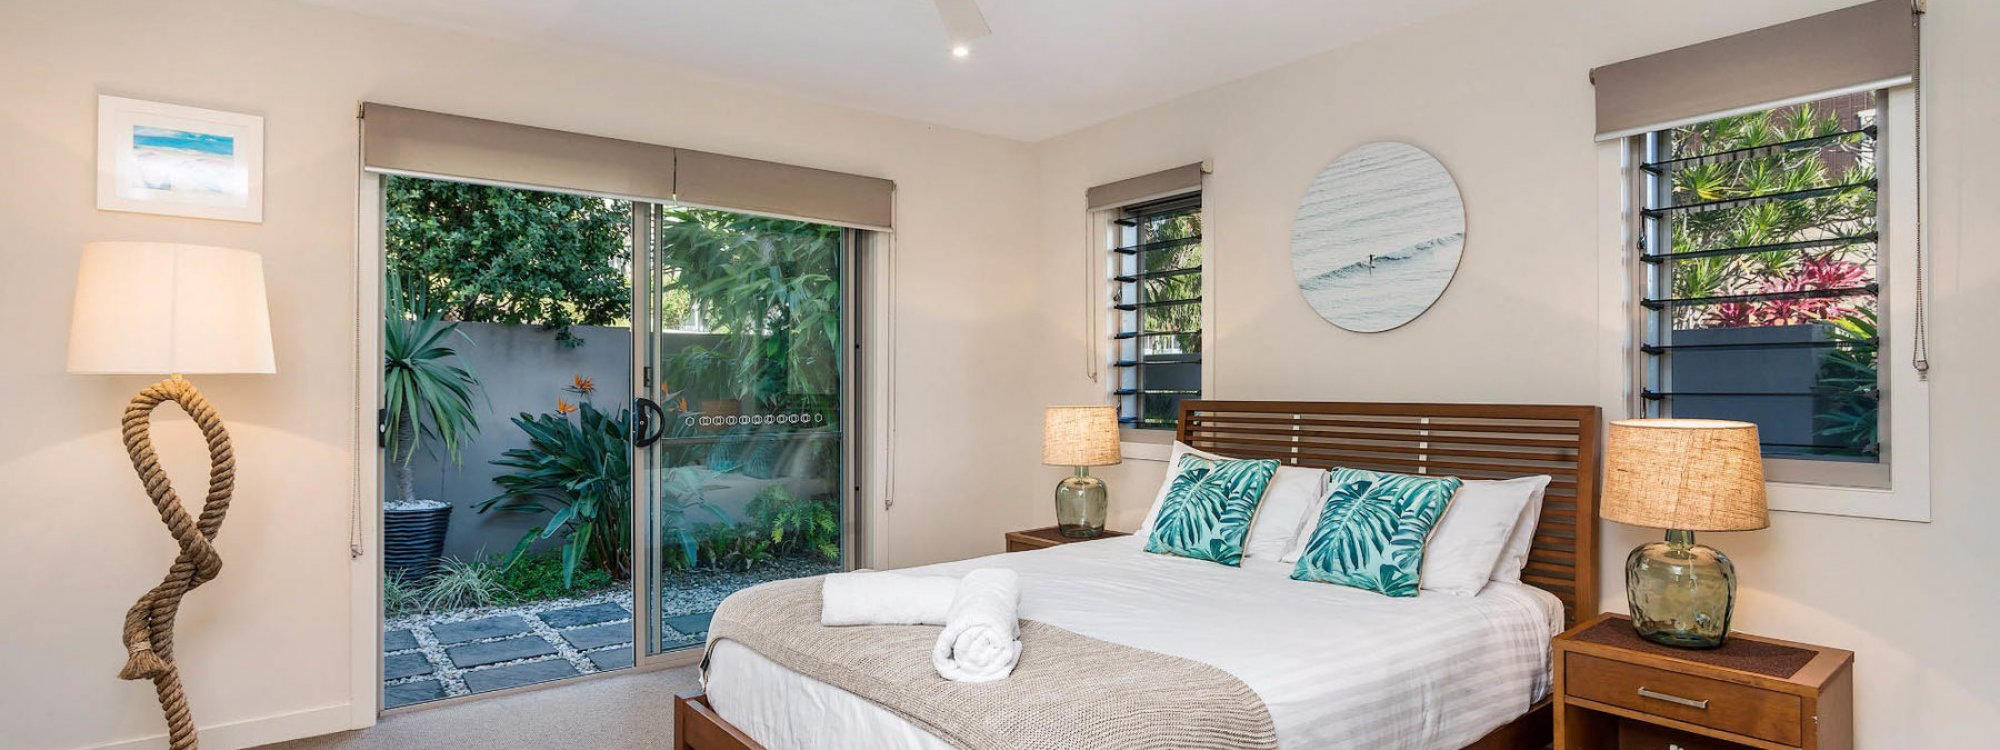 Byron Beach Style - Byron Bay - Downstairs Queen Bedroom